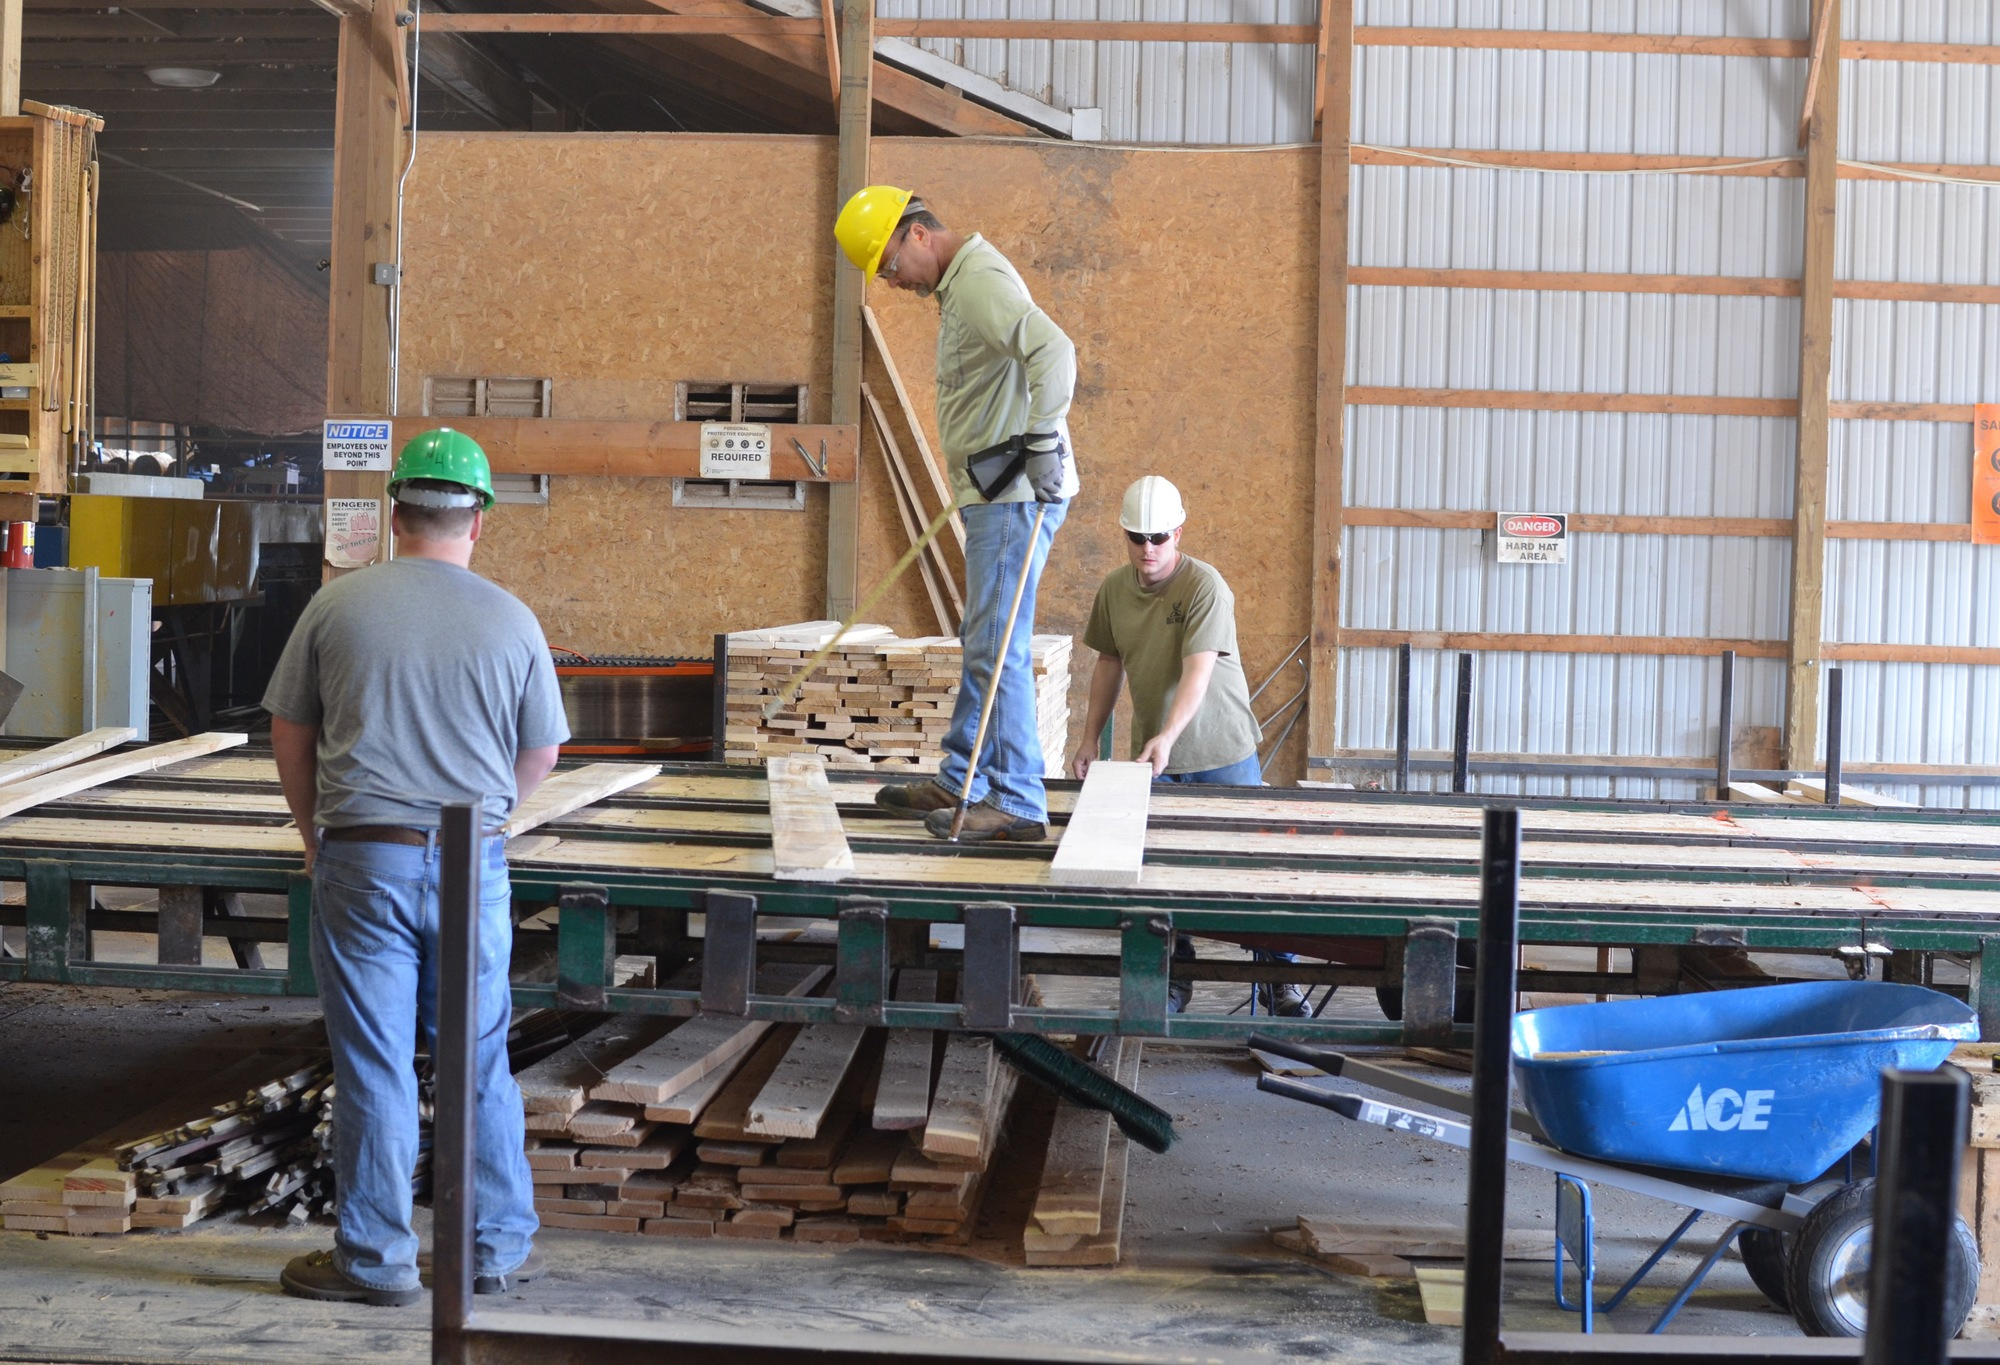 Workers moving wood through the milling process.